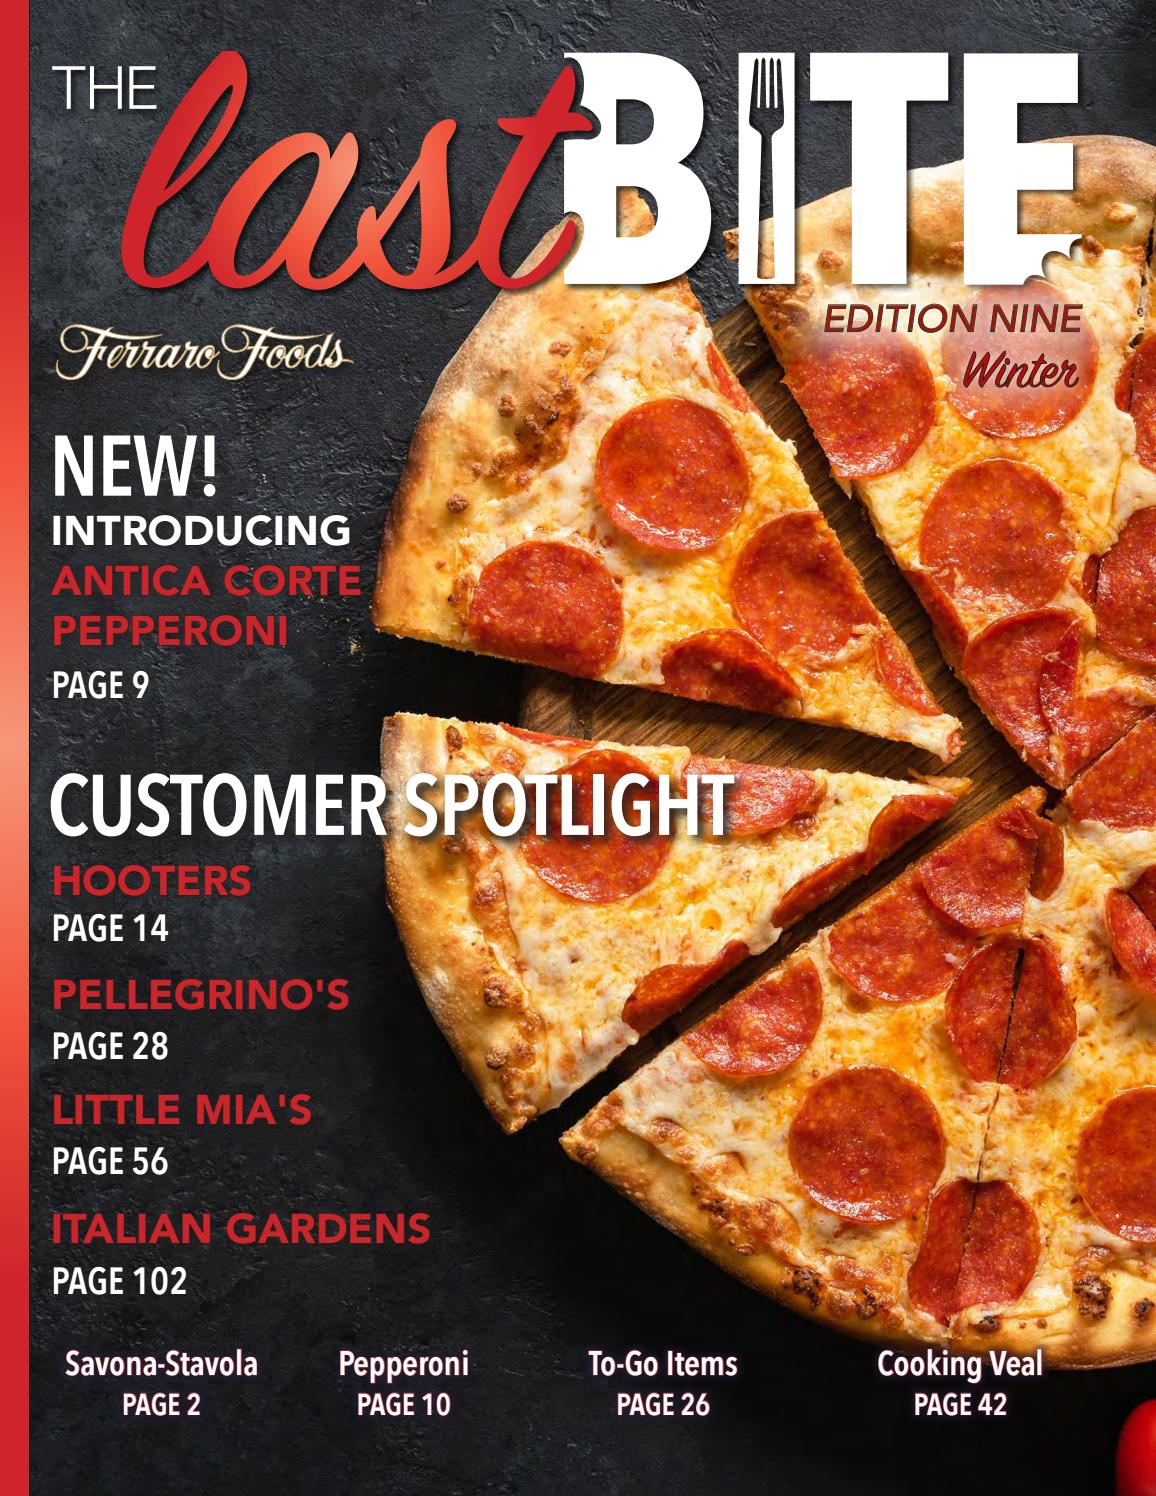 The Last Bite: Edition 9 by The Last Bite - issuu